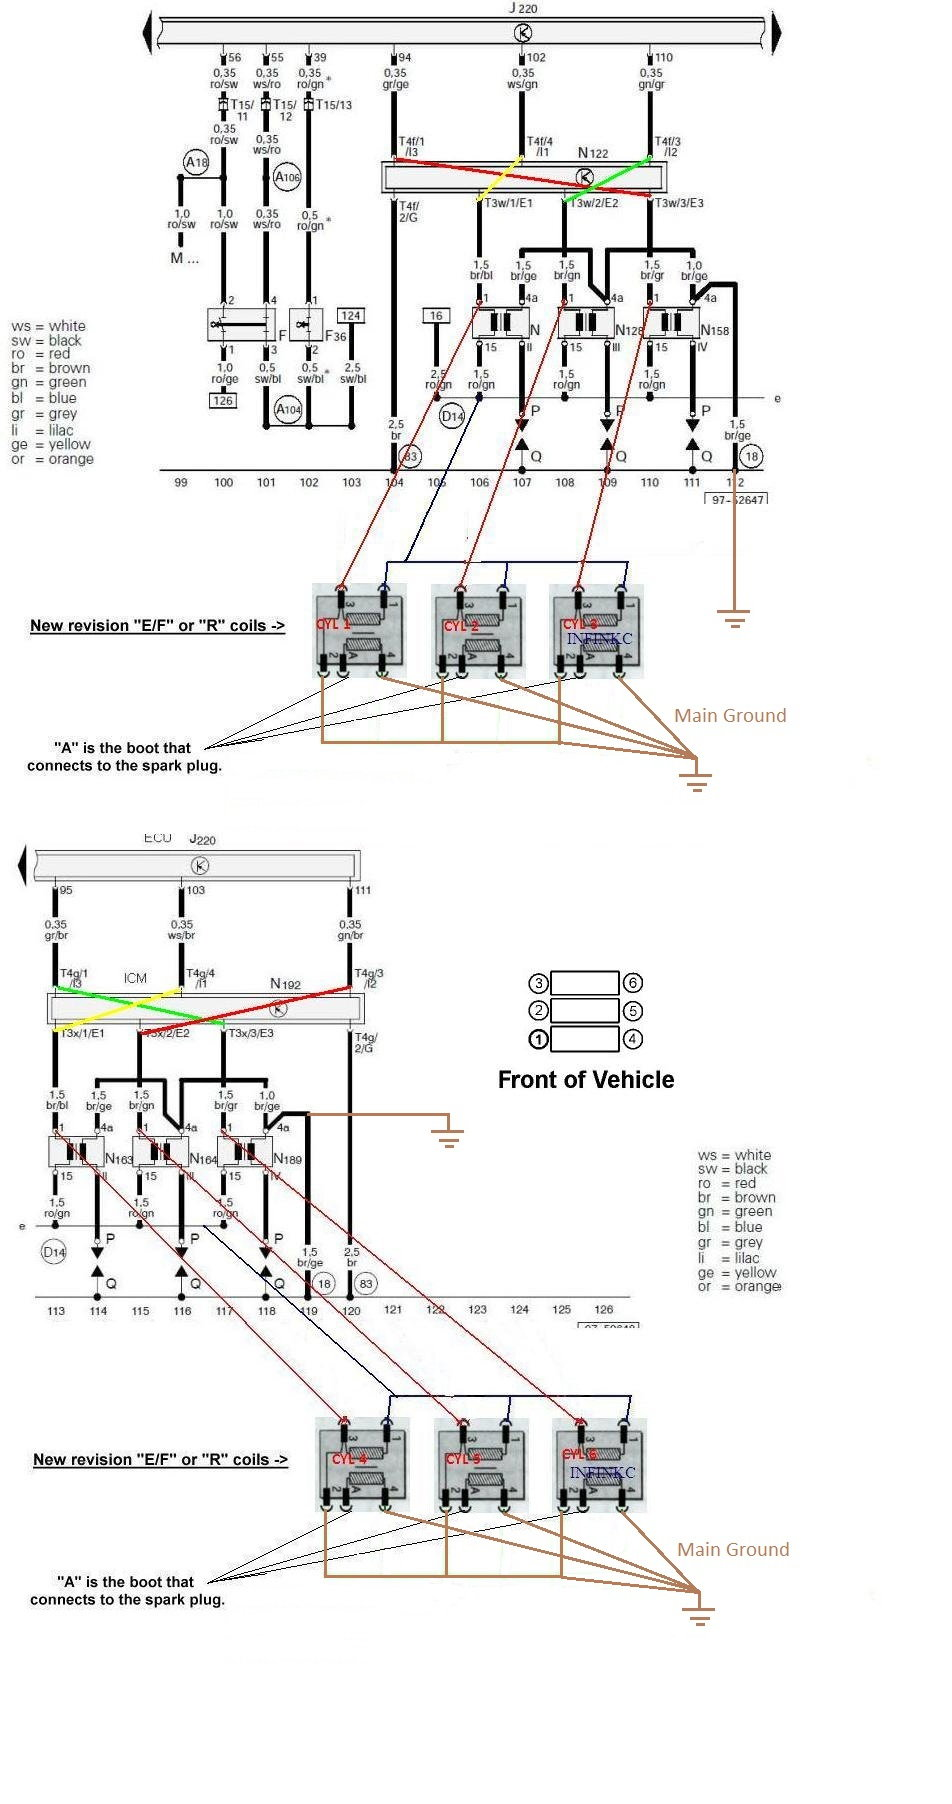 Audi 2 7t Engine Diagram Icm Schematics 0t Delete Coil Conversion Audiworld Forums A4 18t